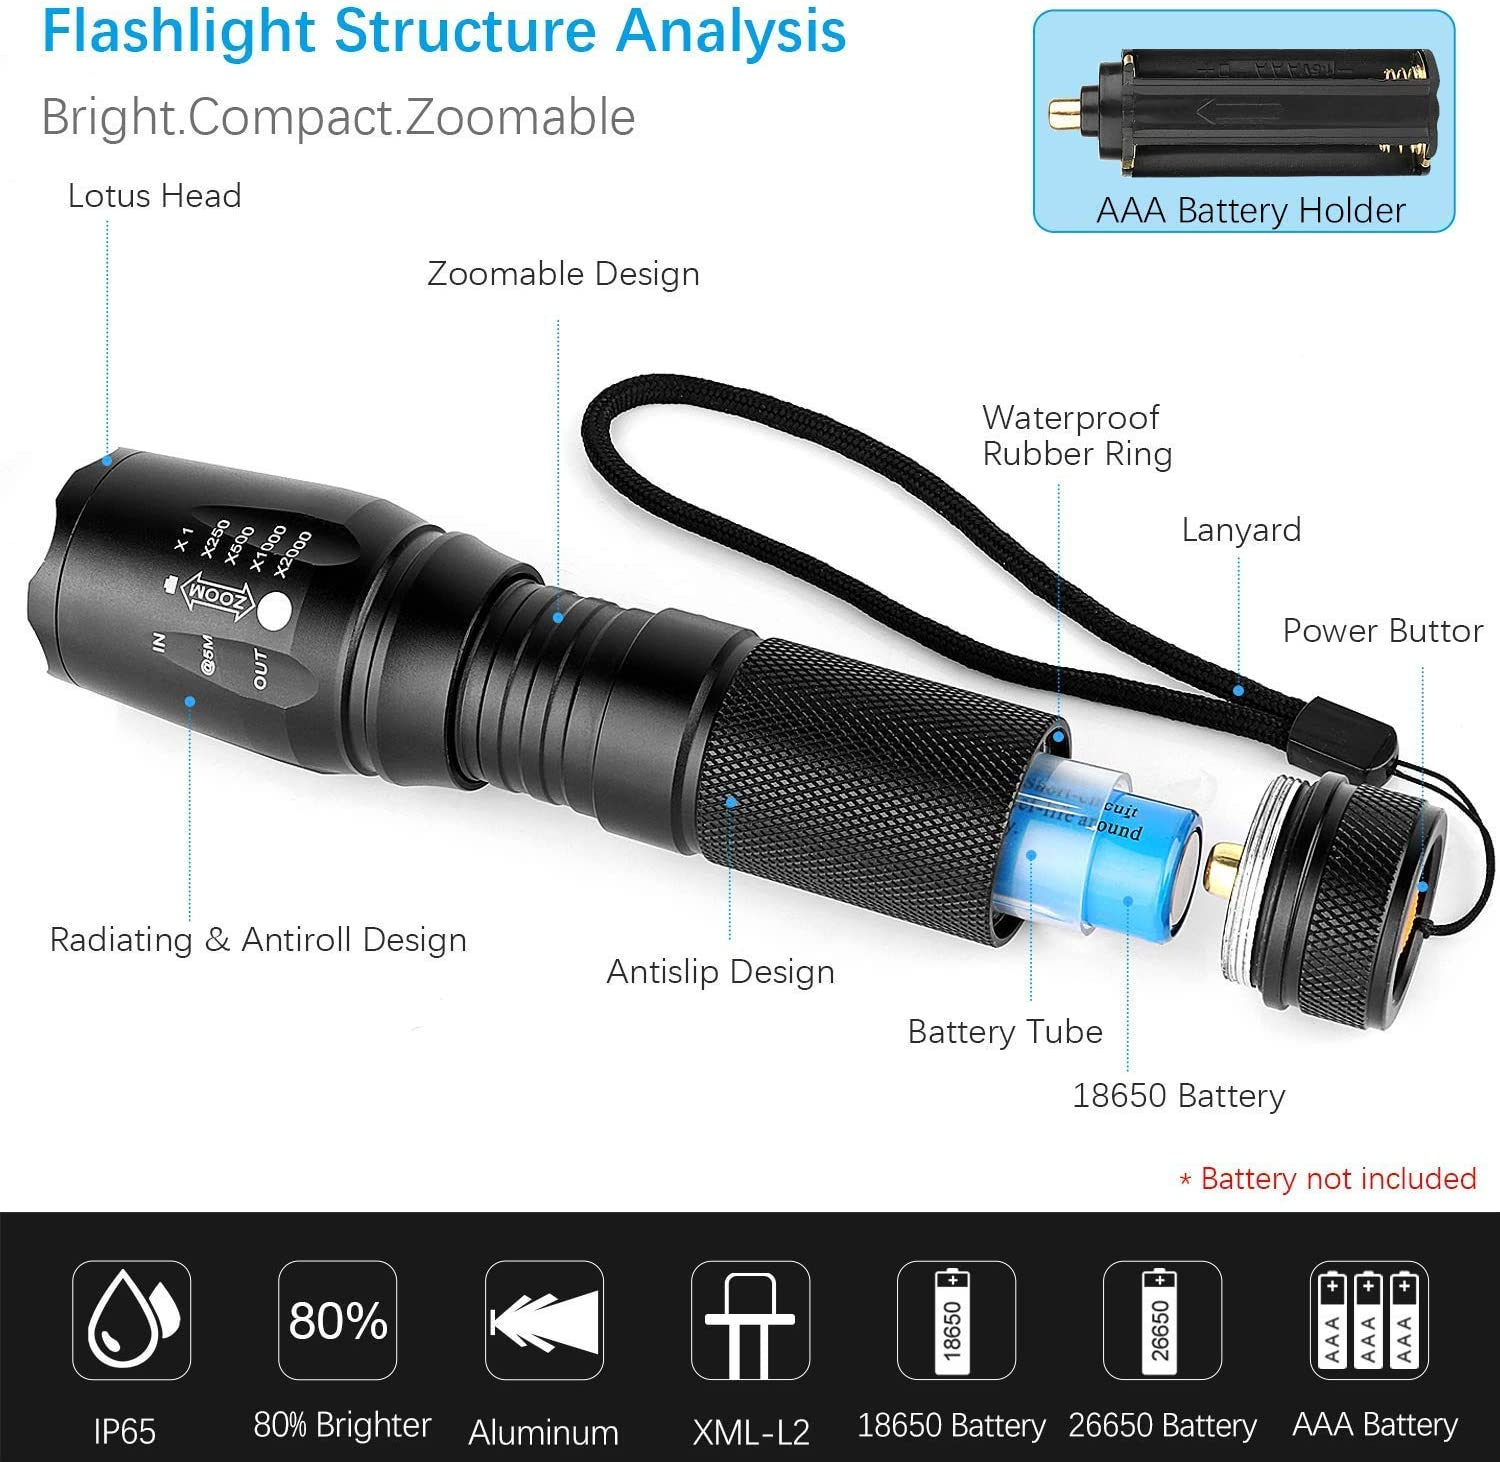 Super Bright High Lumen LED Flashlight with 5 Modes Zoomable Water Resistant Flash Light for Camping Handheld Torch Light Emergency or Gift Outdoor BINWO High-Powered LED Tactical Flashlight